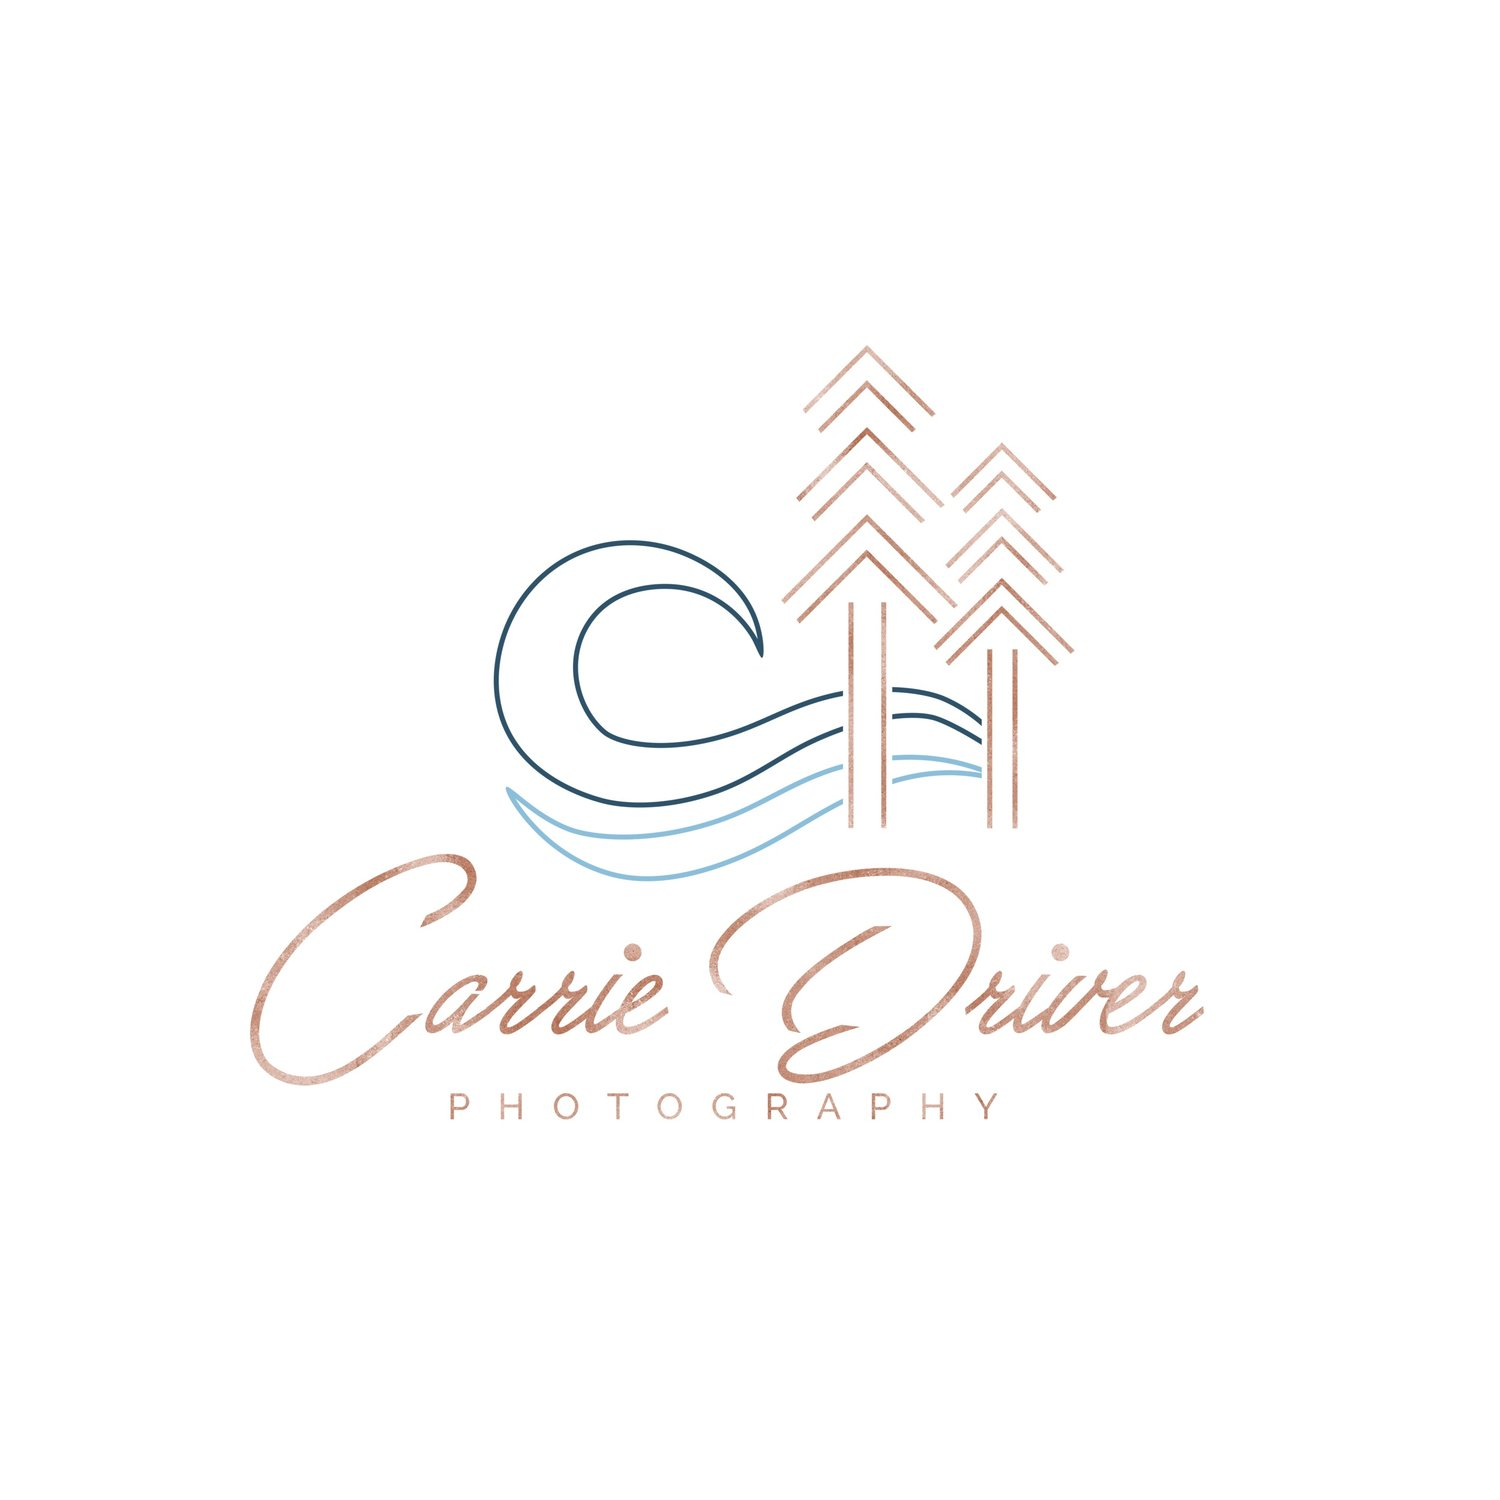 Carrie Driver Photography